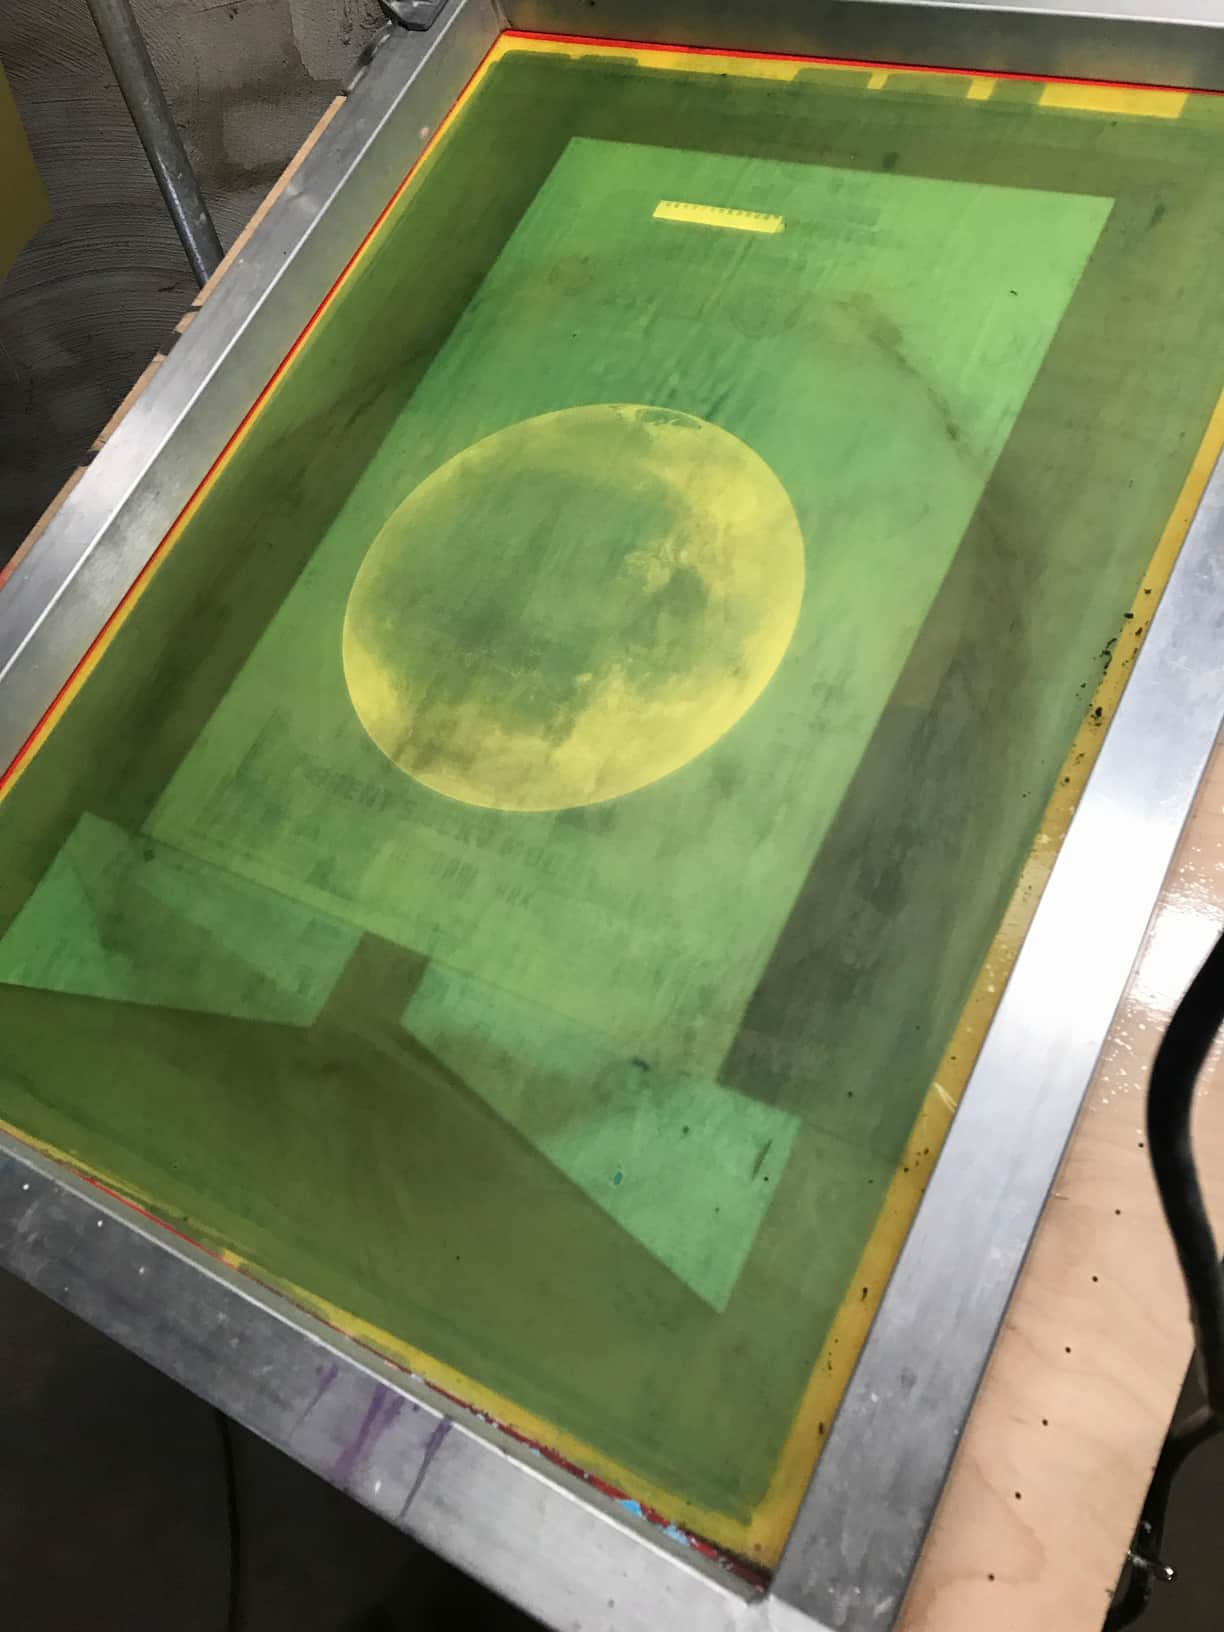 Mars Poster Printed on Sheet Metal with Rust by Barry Abrams